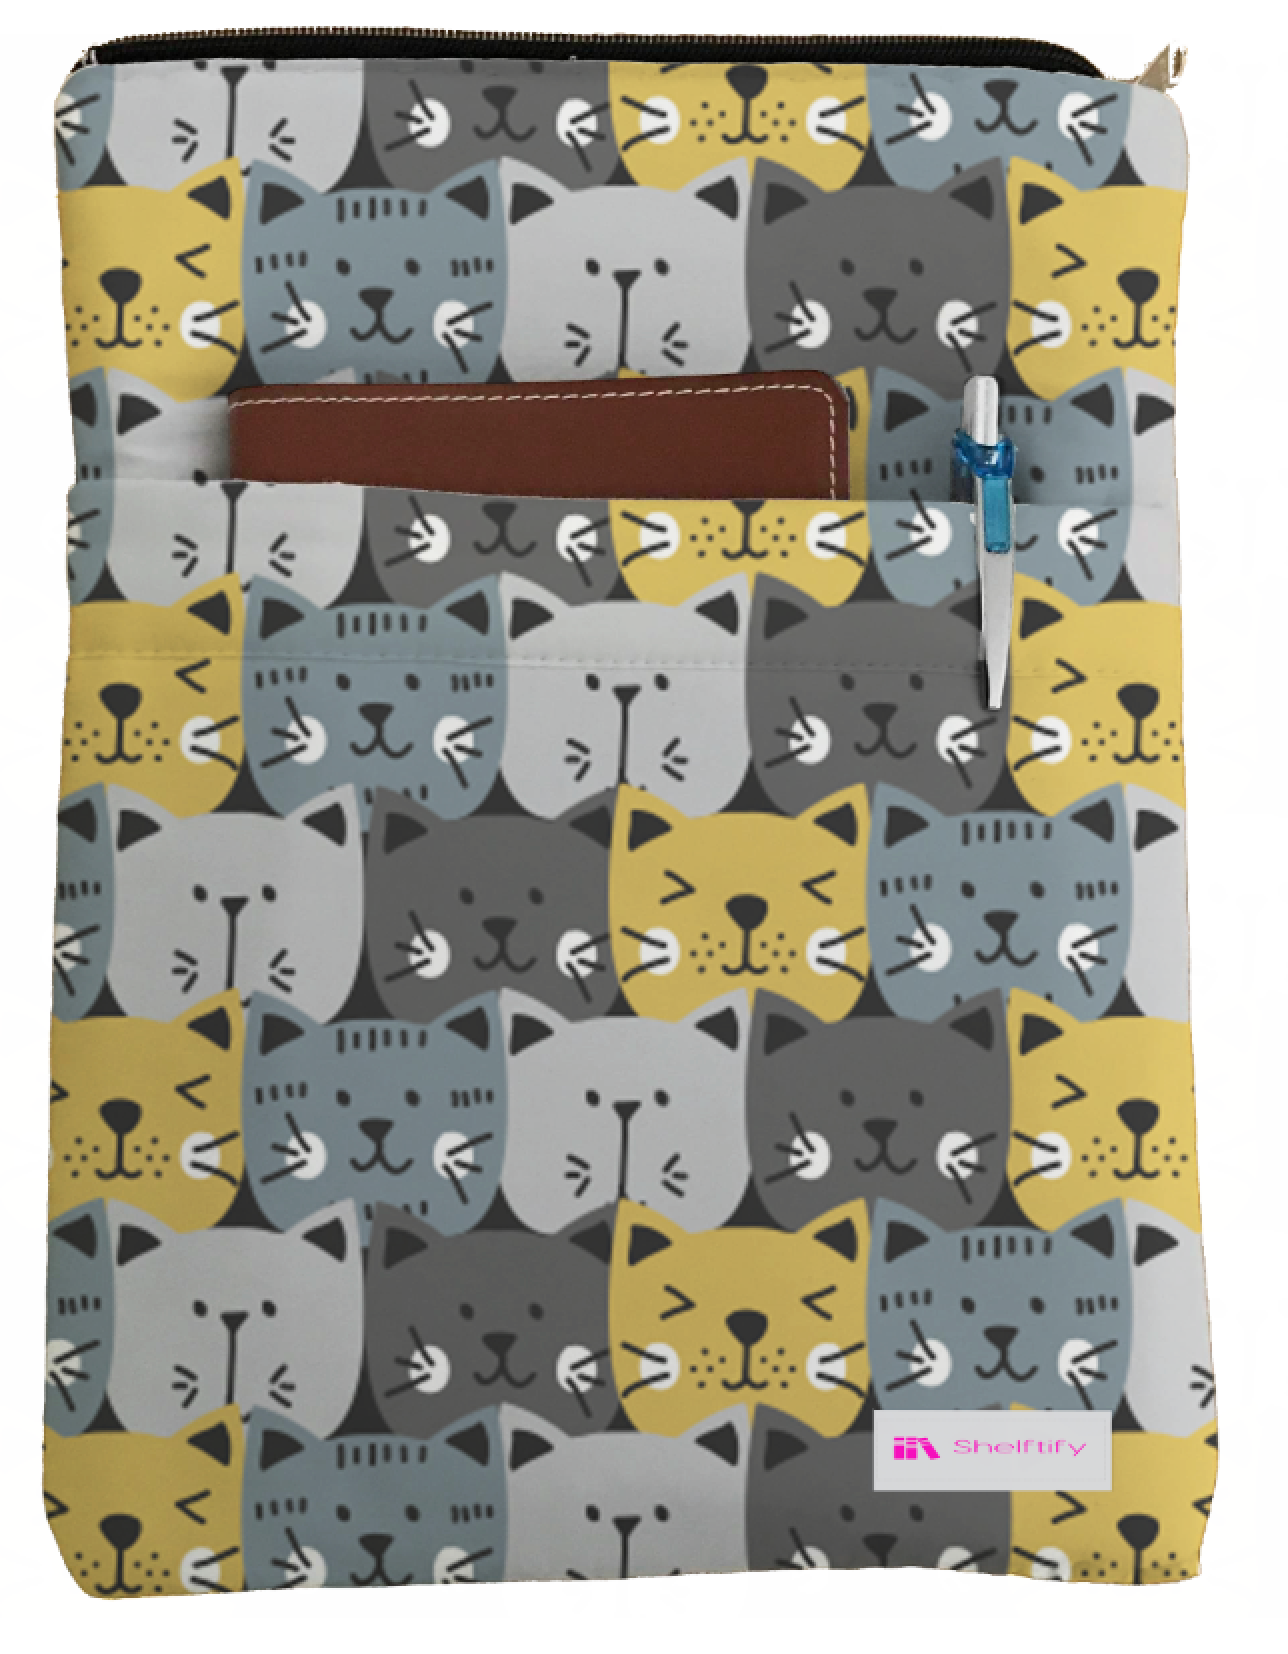 Cat Faces Book Sleeve - Book Cover For Hardcover and Paperback - Book Lover Gift - Notebooks and Pens Not Included